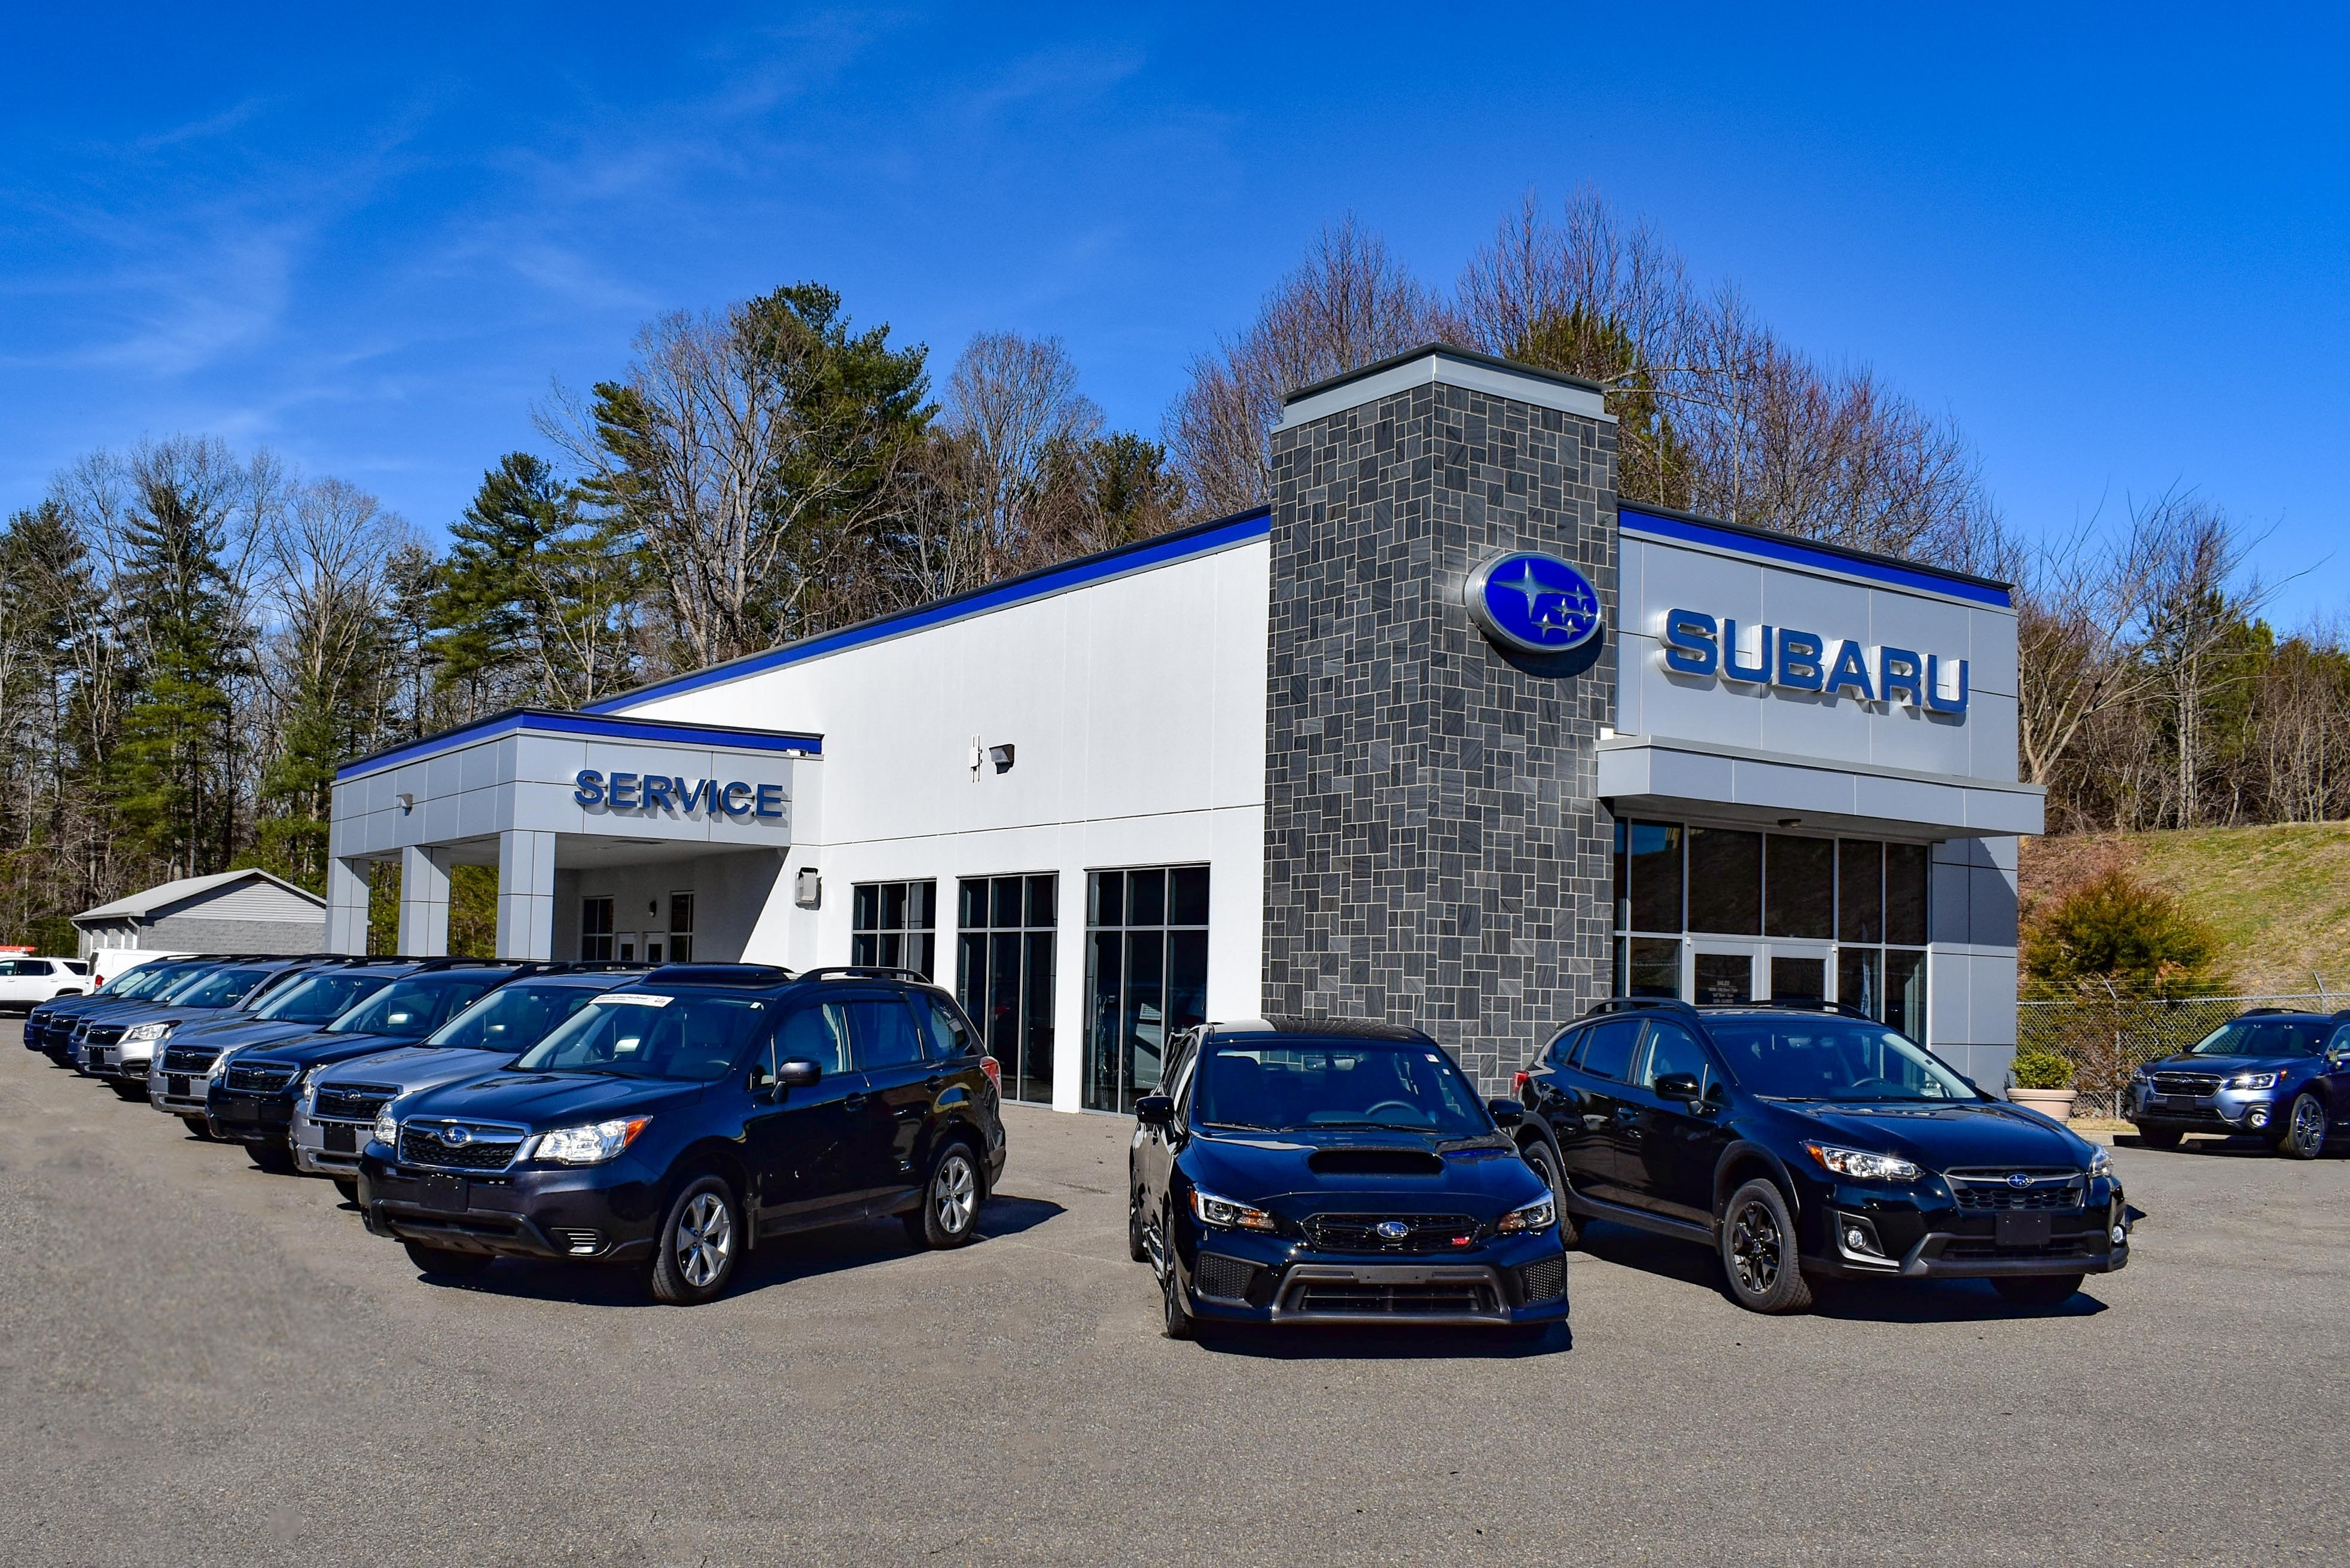 scenic subaru new subaru dealership in mount airy nc 27030. Black Bedroom Furniture Sets. Home Design Ideas